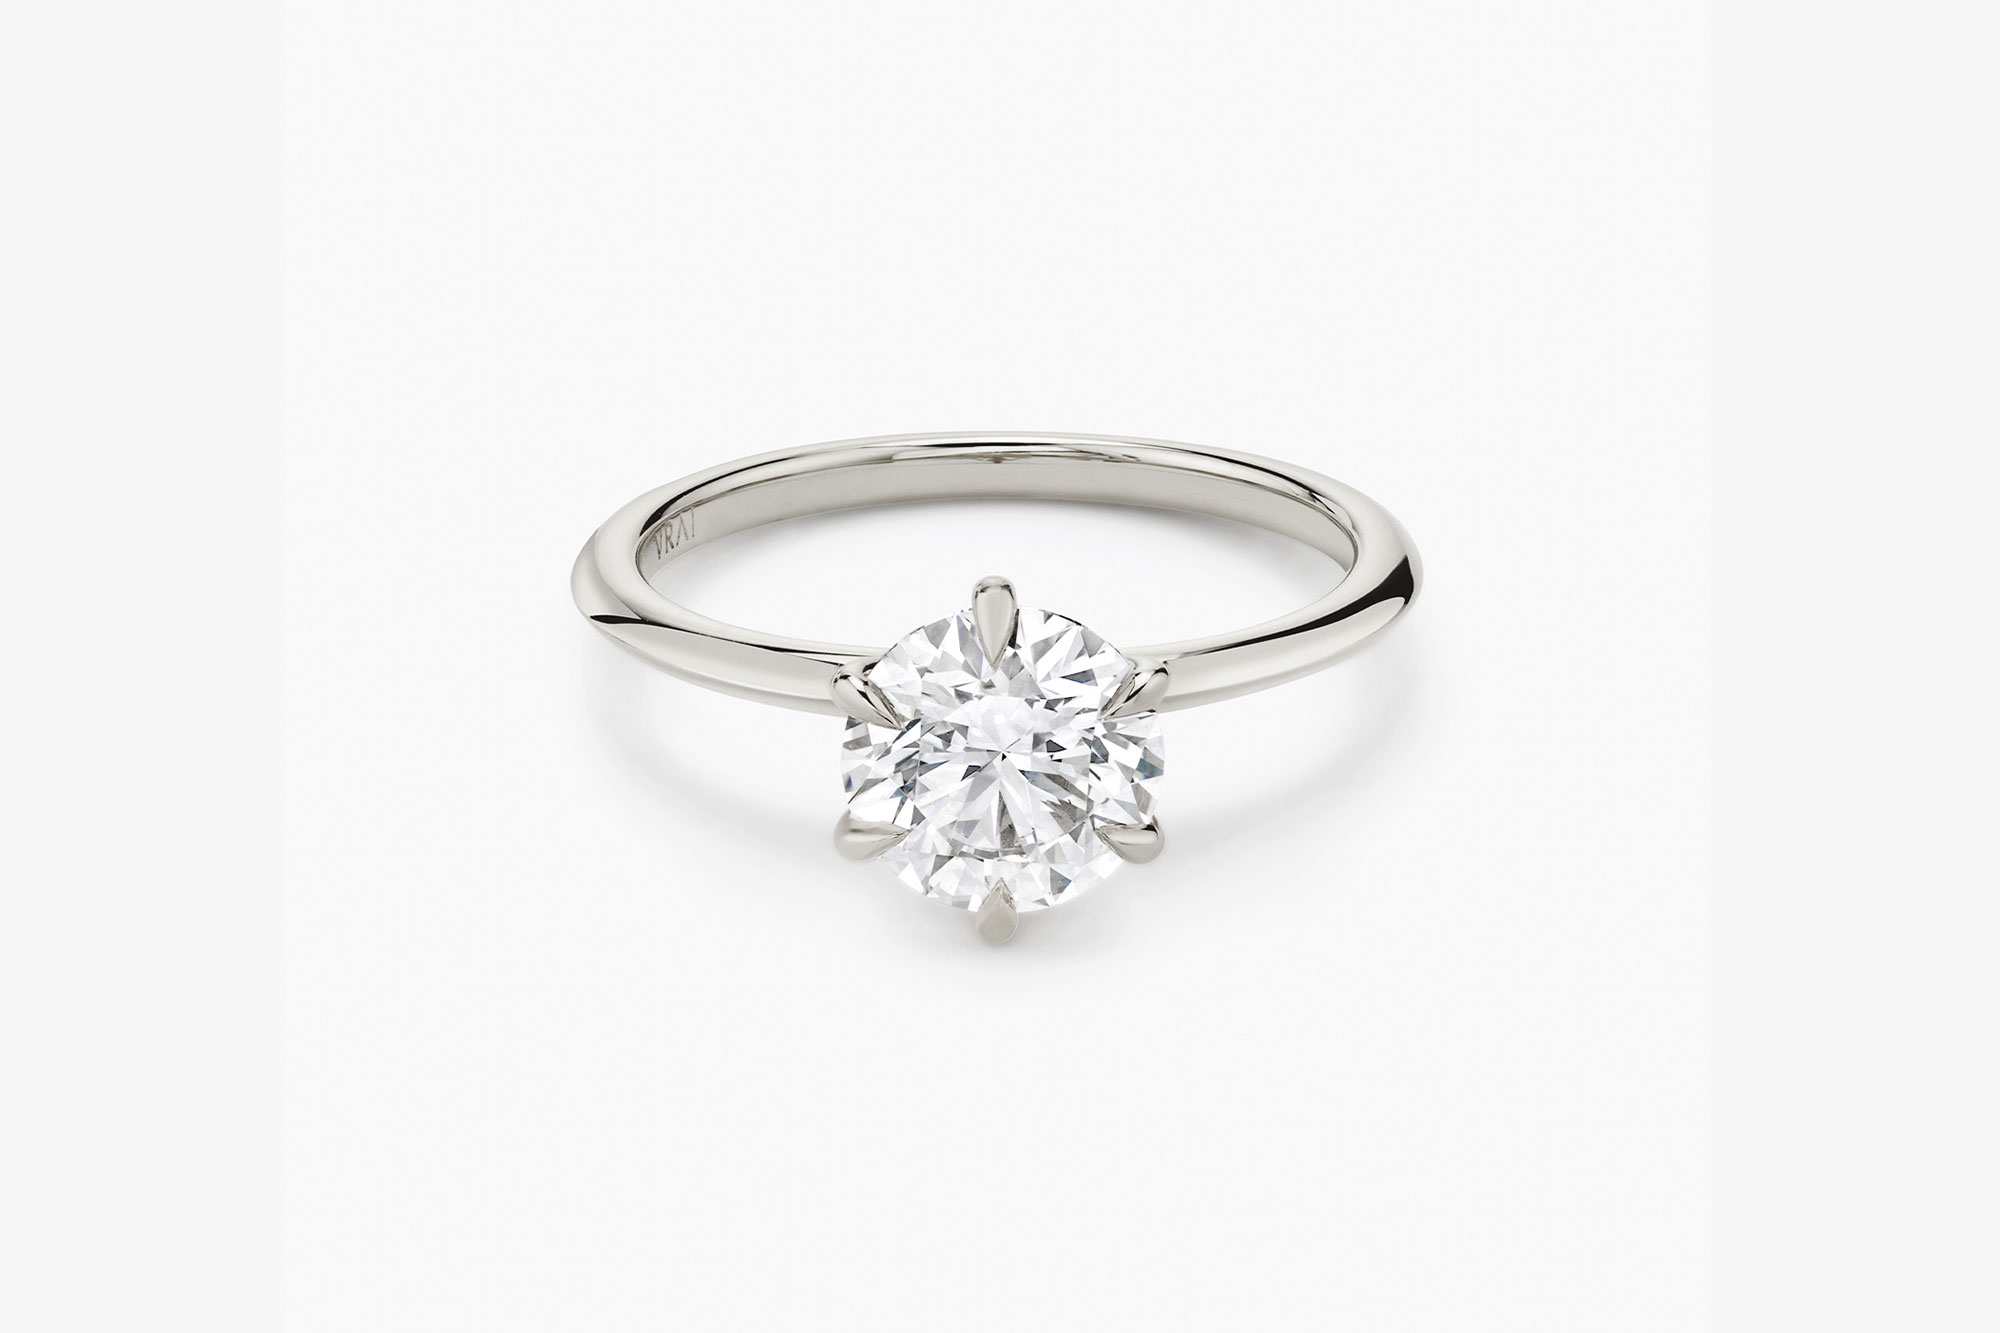 The Knife-Edge solitaire ring in platinum with a round brilliant cut diamond